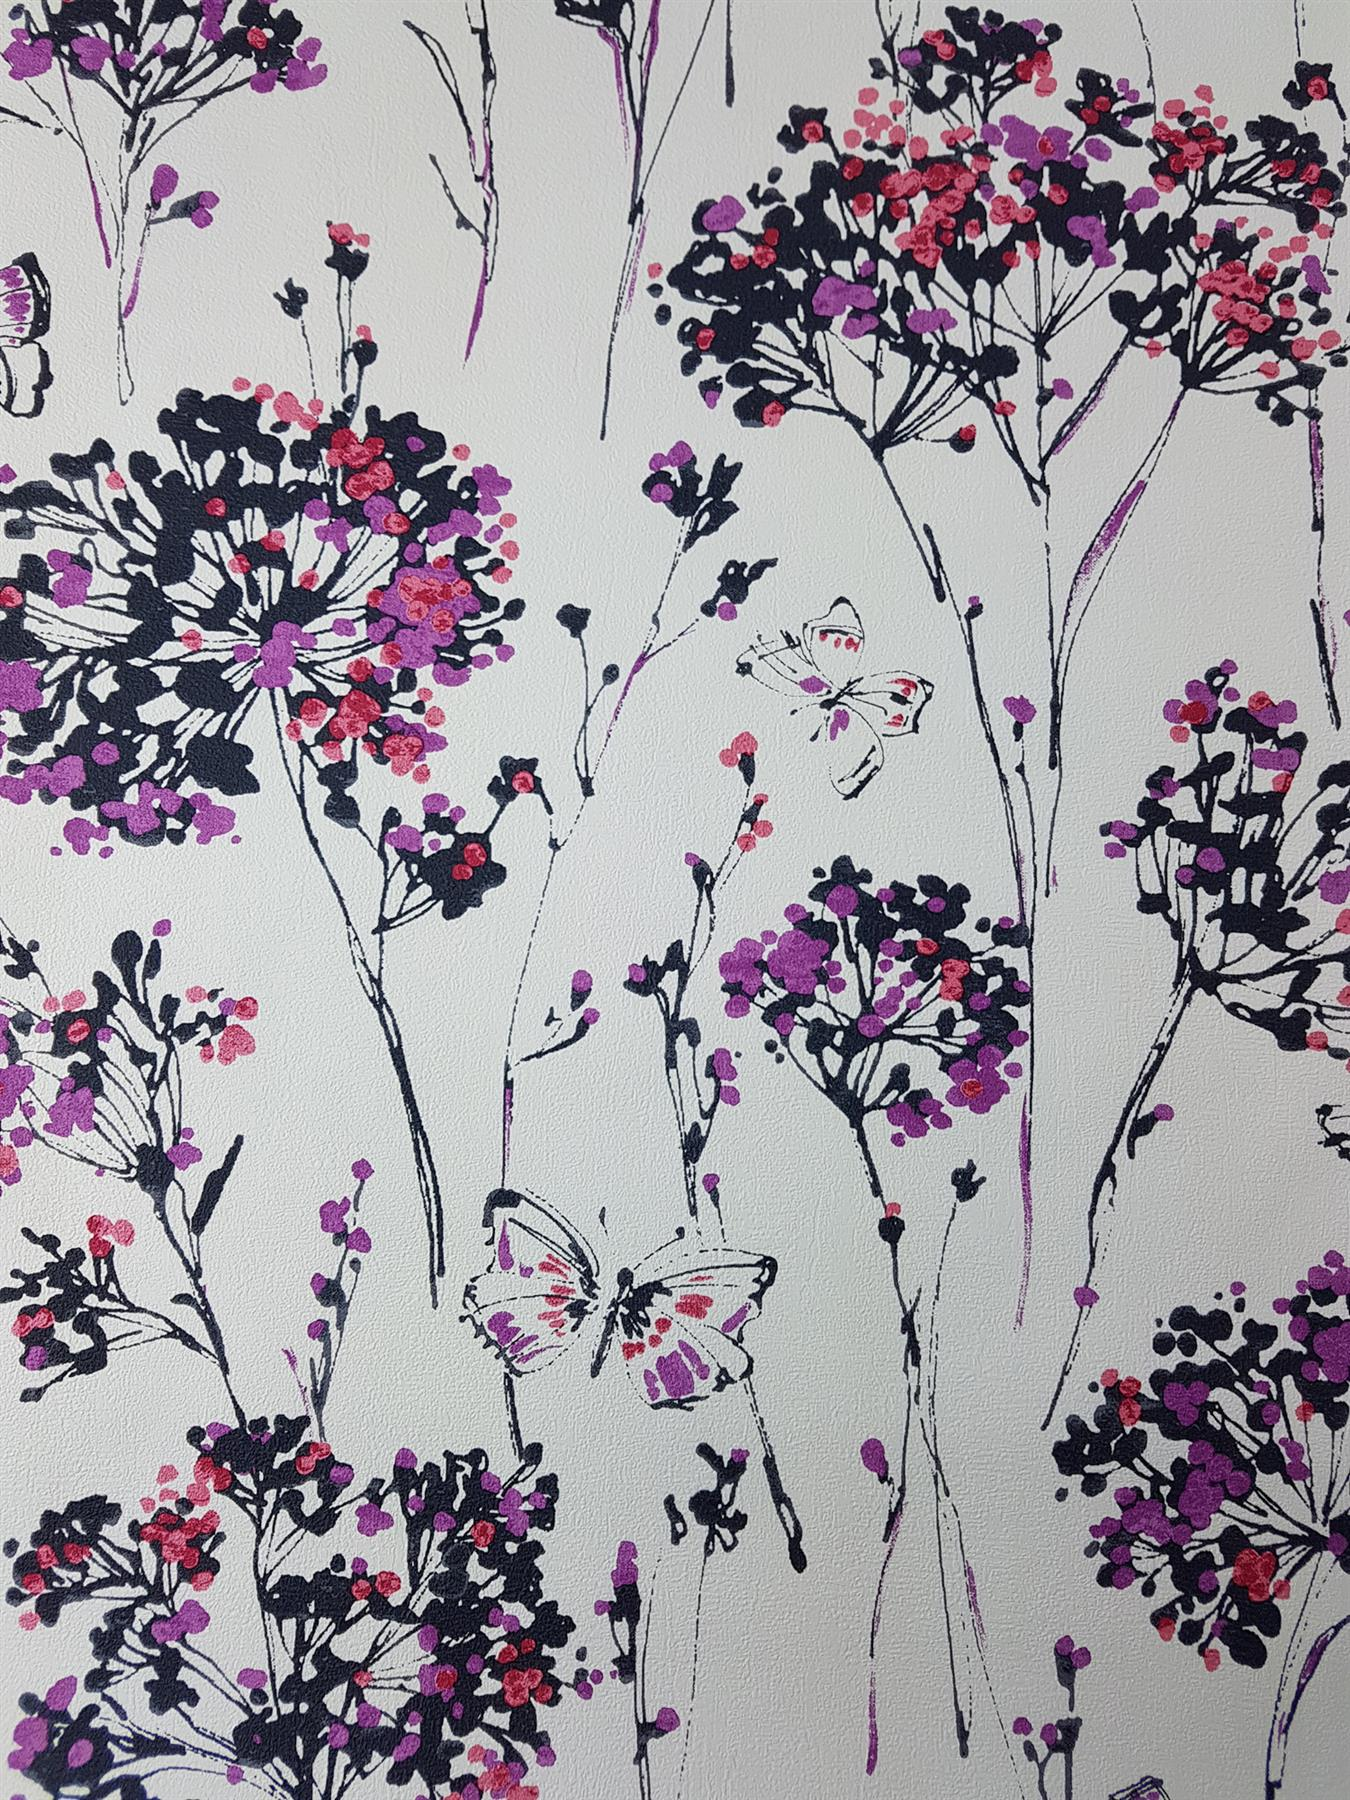 Ugepa Pink White Purple Floral Butterfly Wallpaper Flower Paste